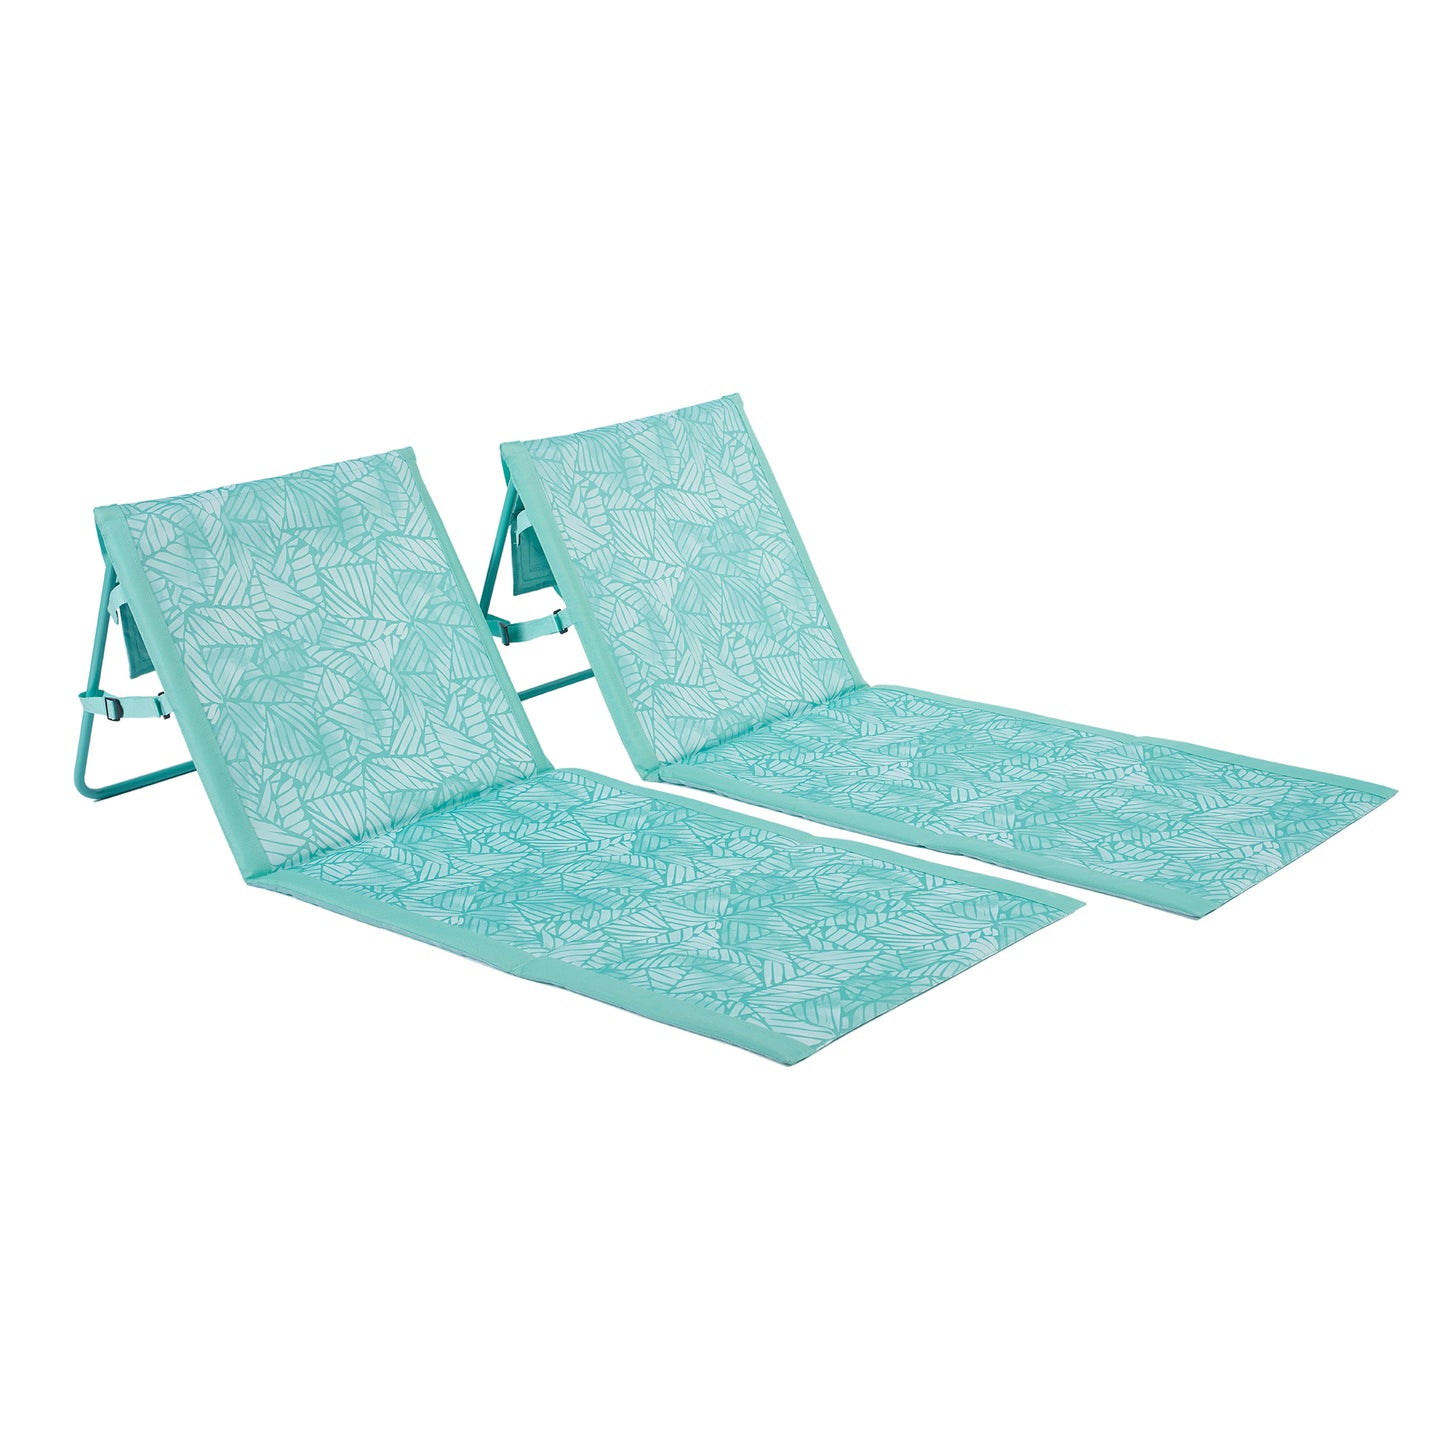 Lightspeed loungers come in a two-pack and feature an abstract leaves print in light blue ombre colors with light aqua trim.